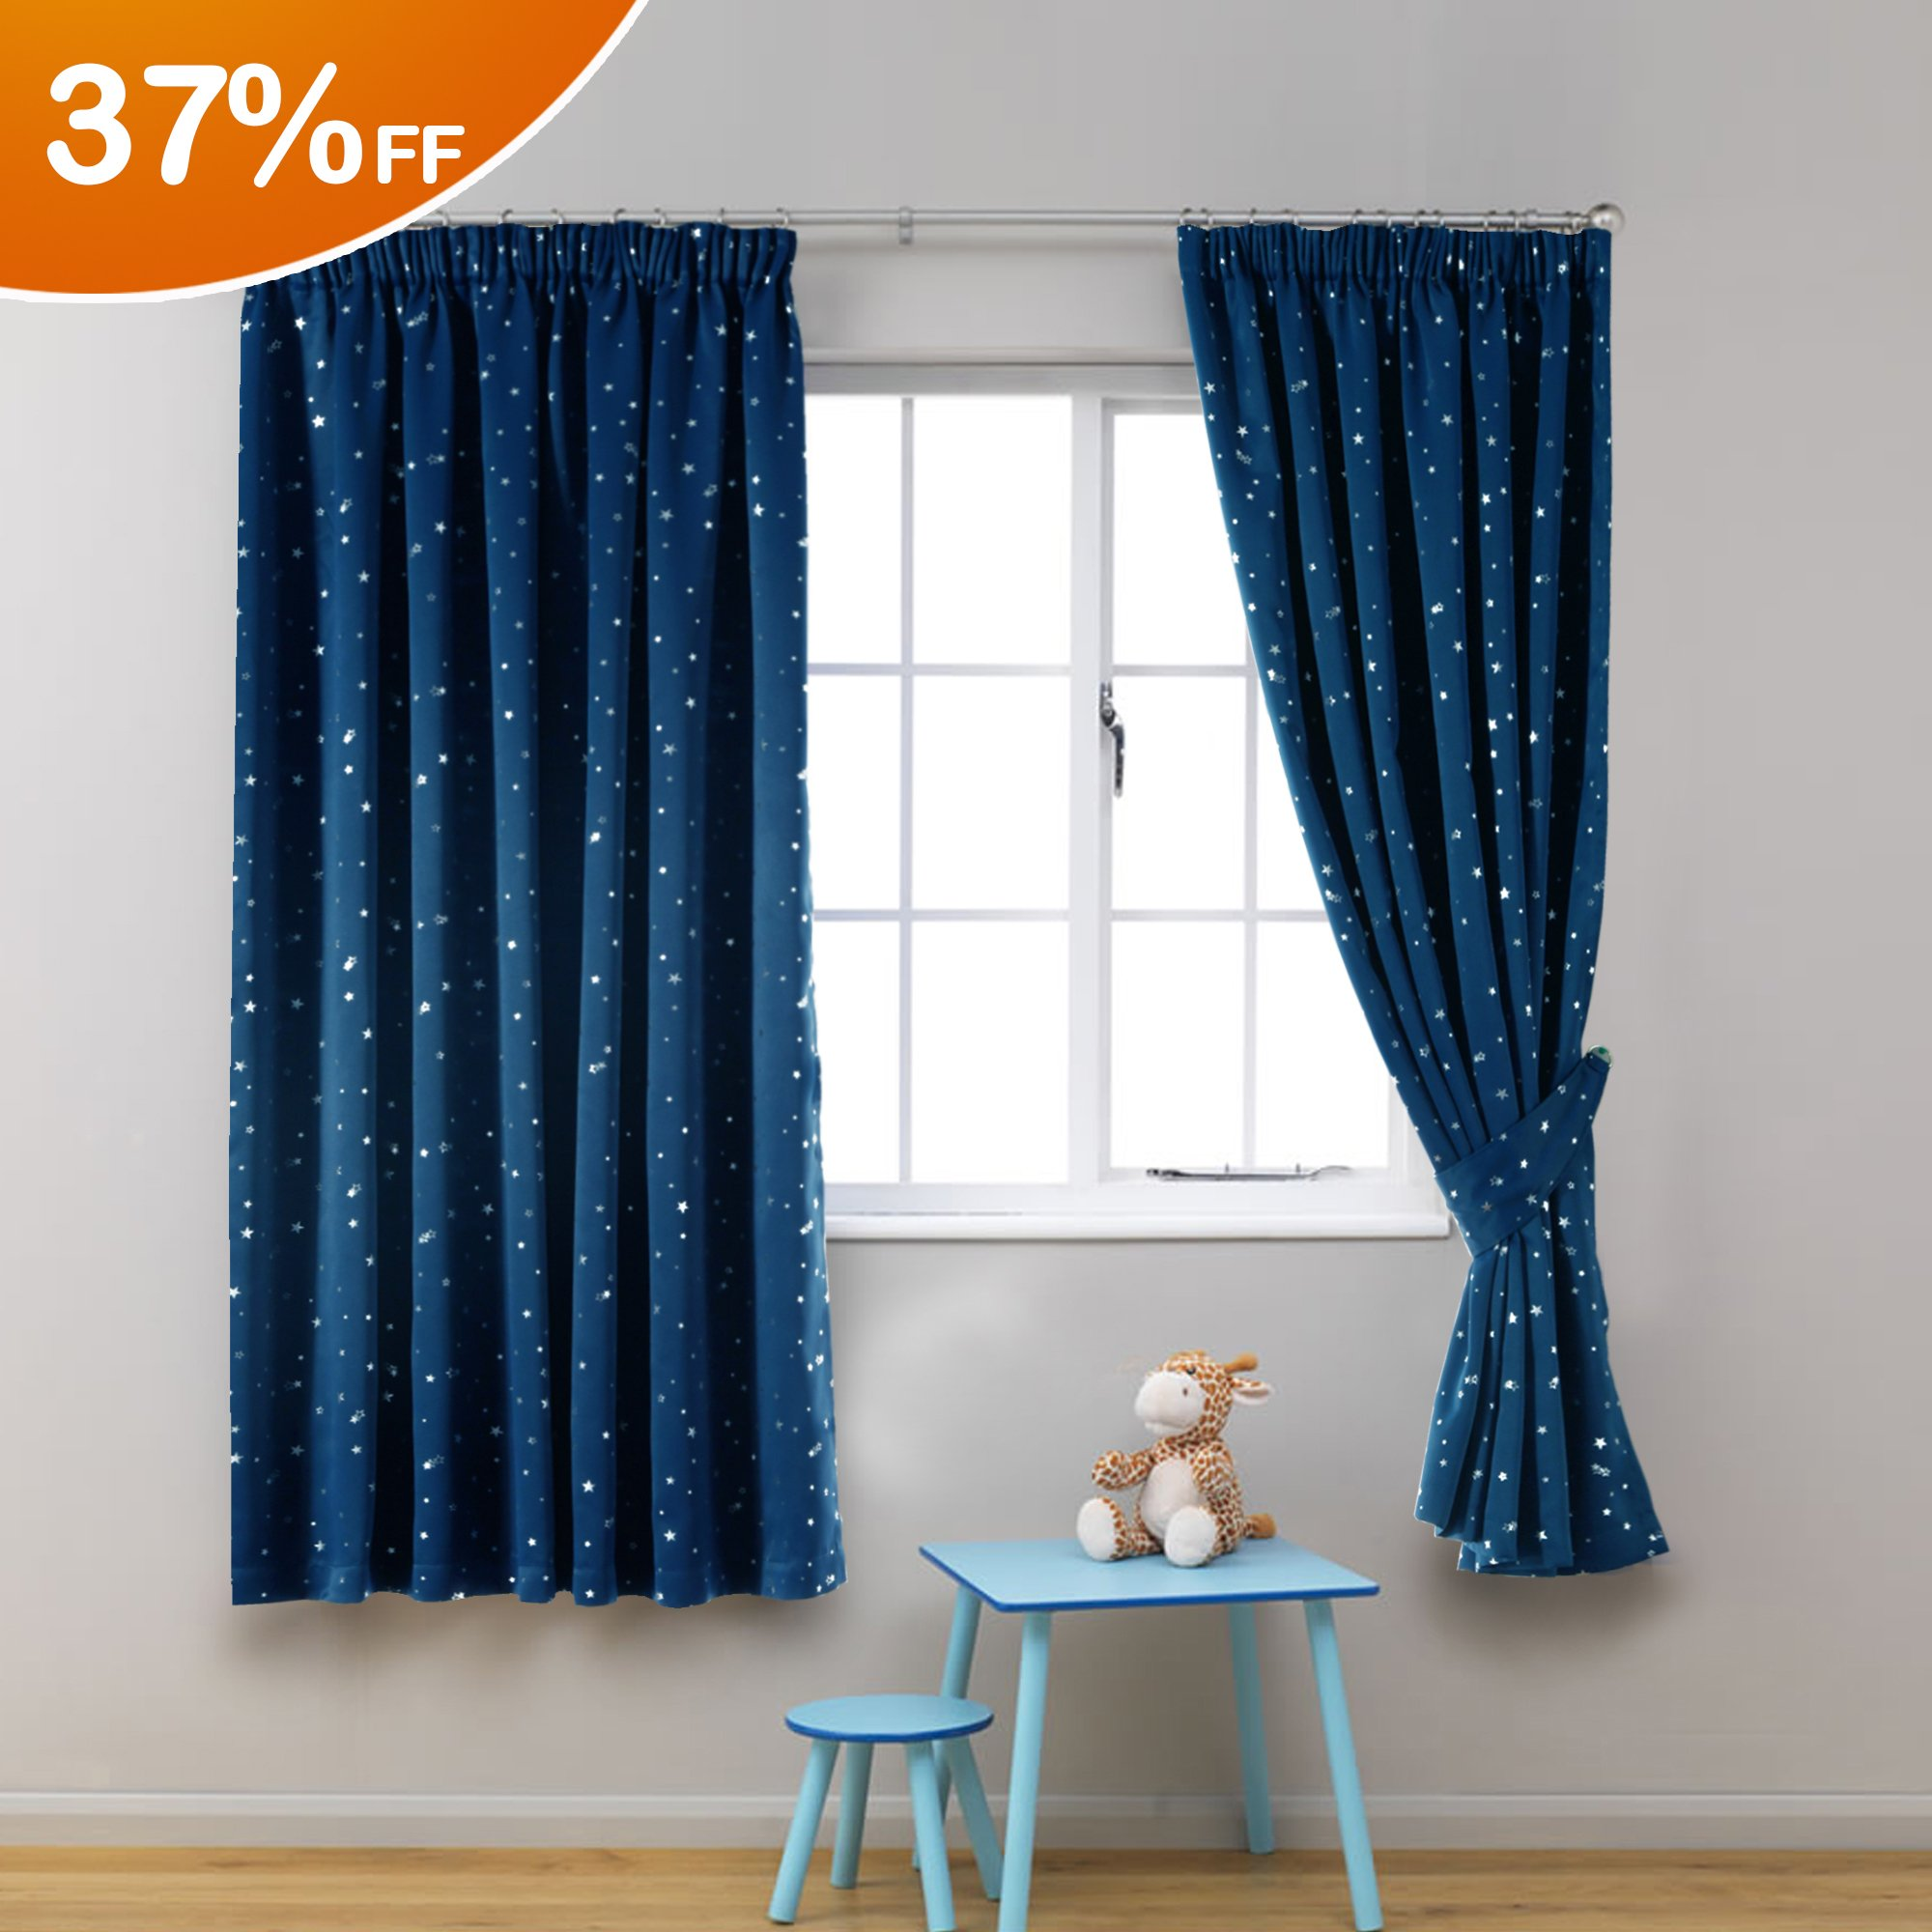 HVersailtex Printed Blackout Pencil Pleat Pair Light Reducing Microfiber Curtains Thermal Insulated